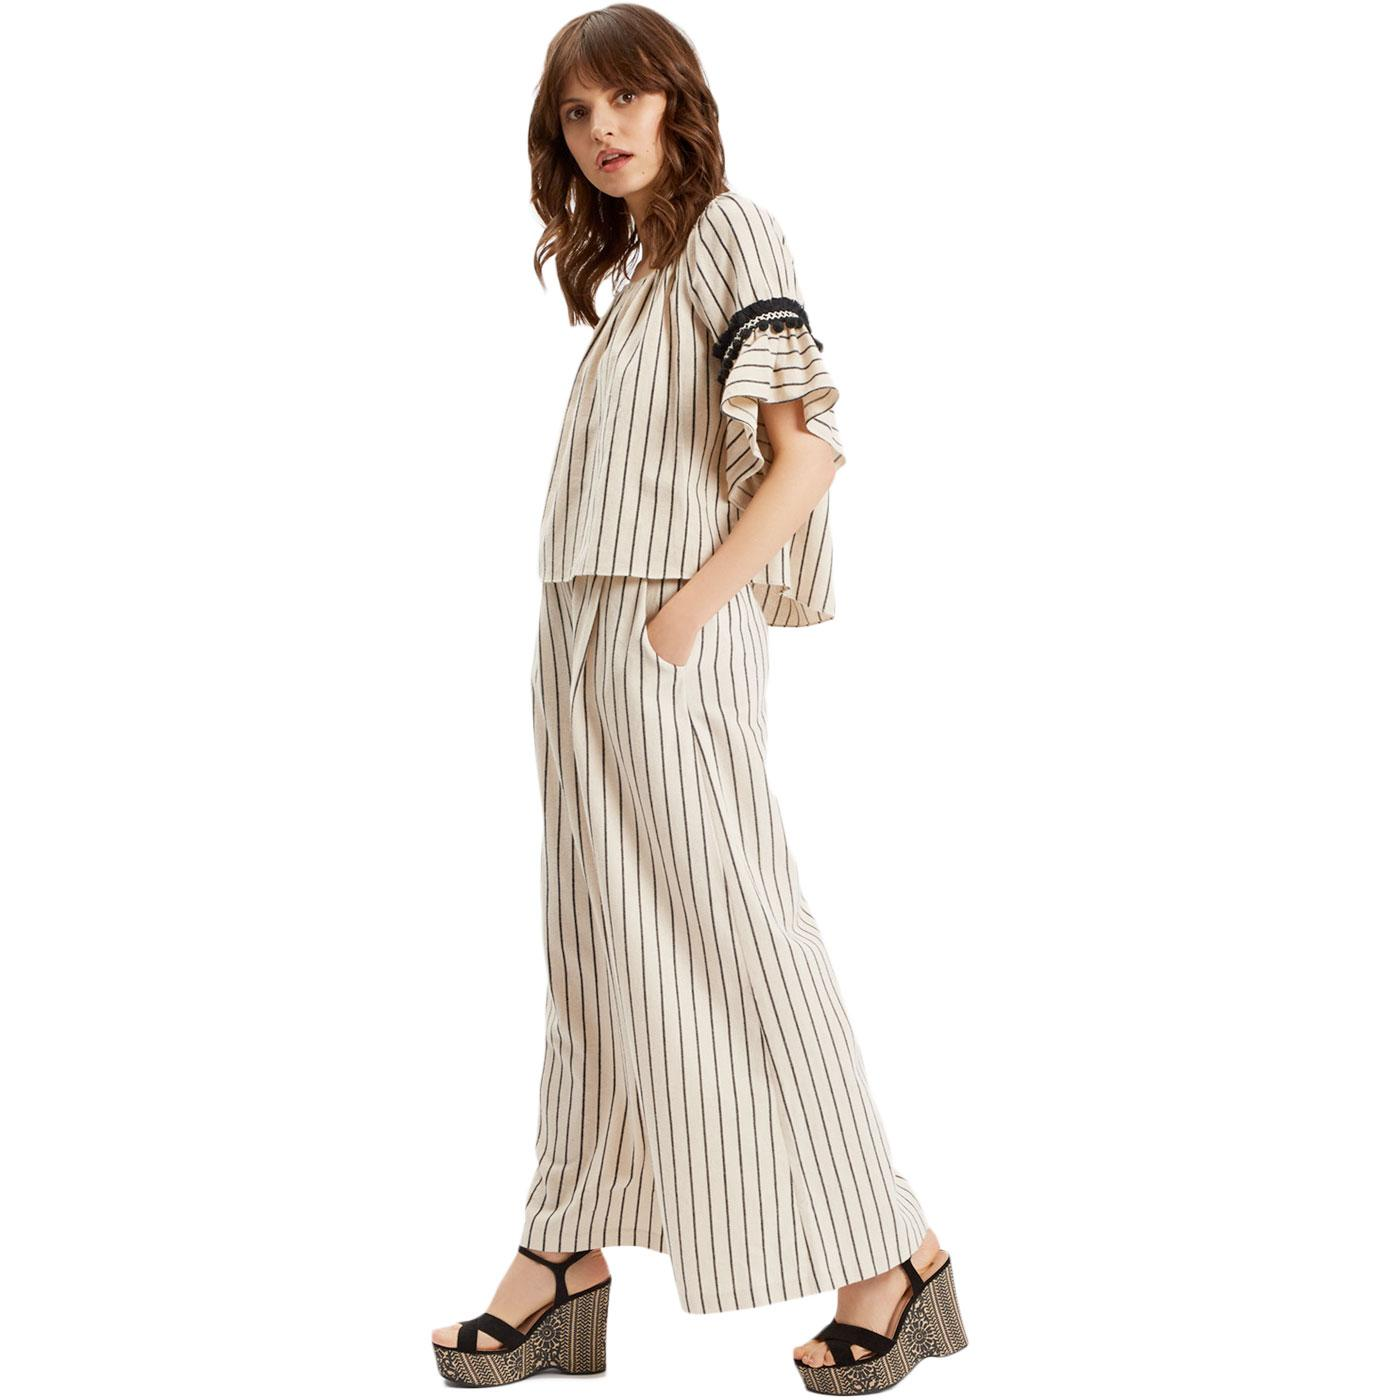 TRAFFIC PEOPLE Retro Wide Leg Trousers & Gypsy Top